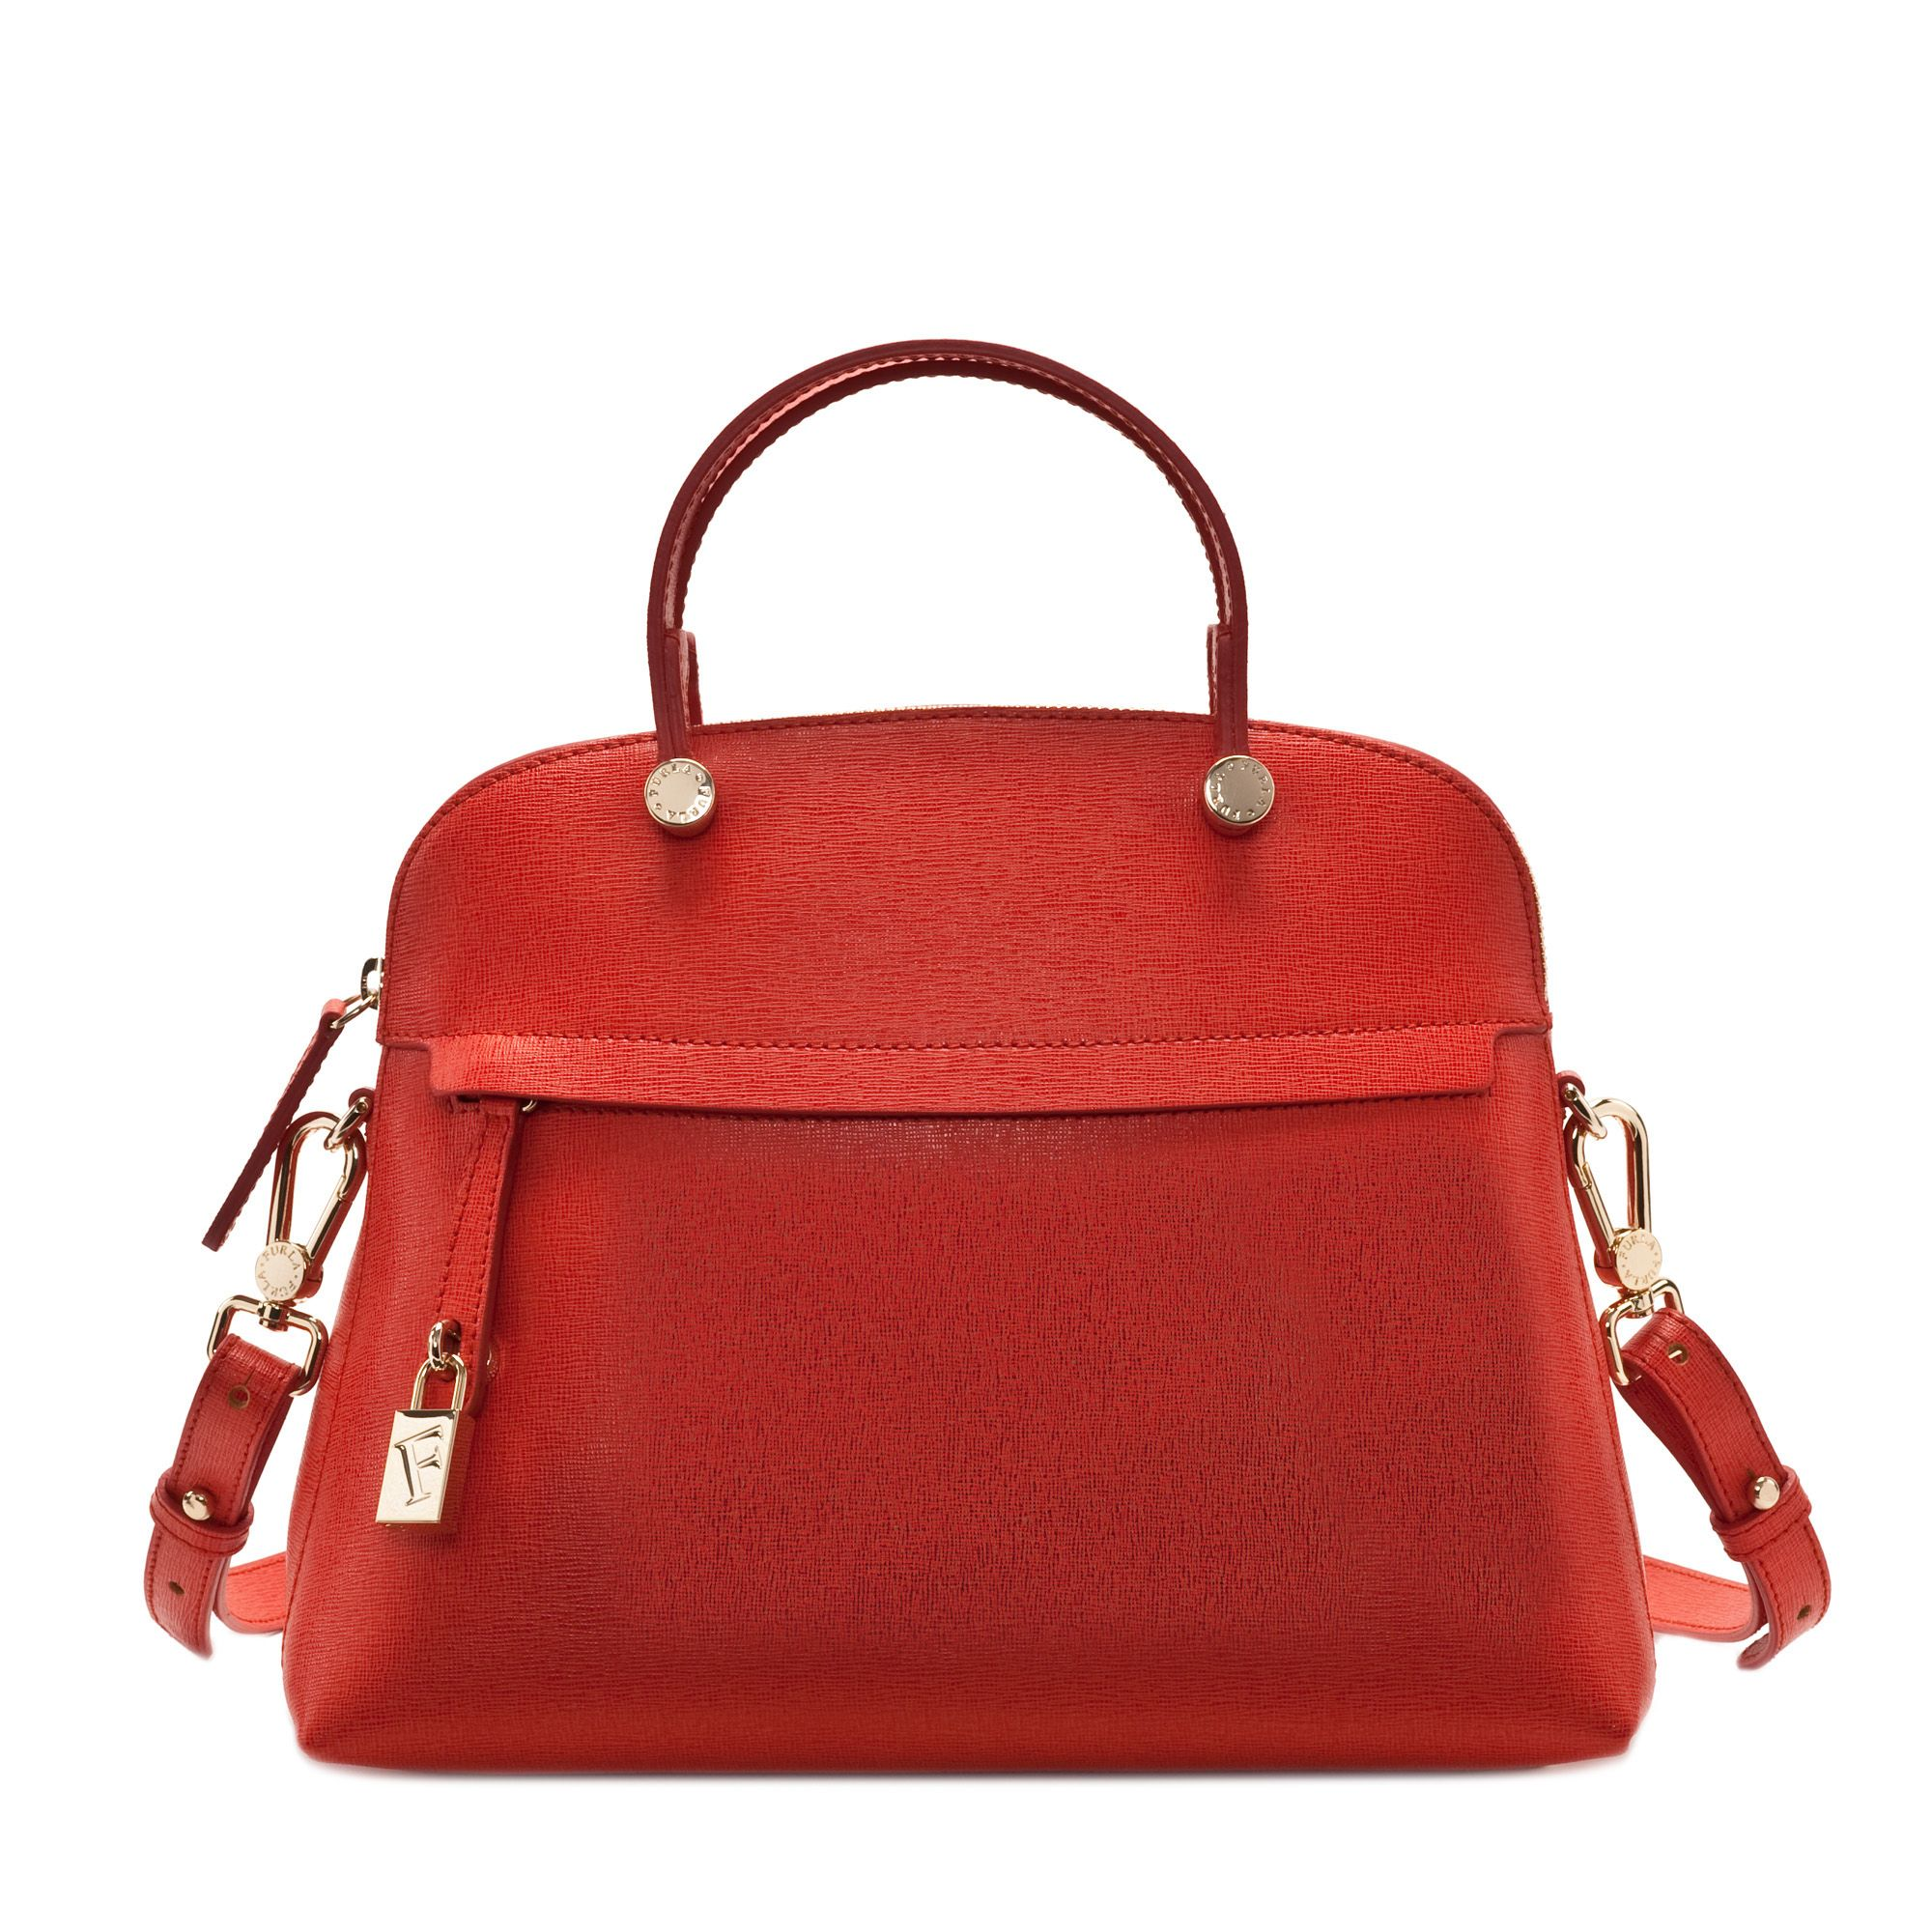 Furla Bag Piper Tote Red Summer 2017 Collection Made In Italy